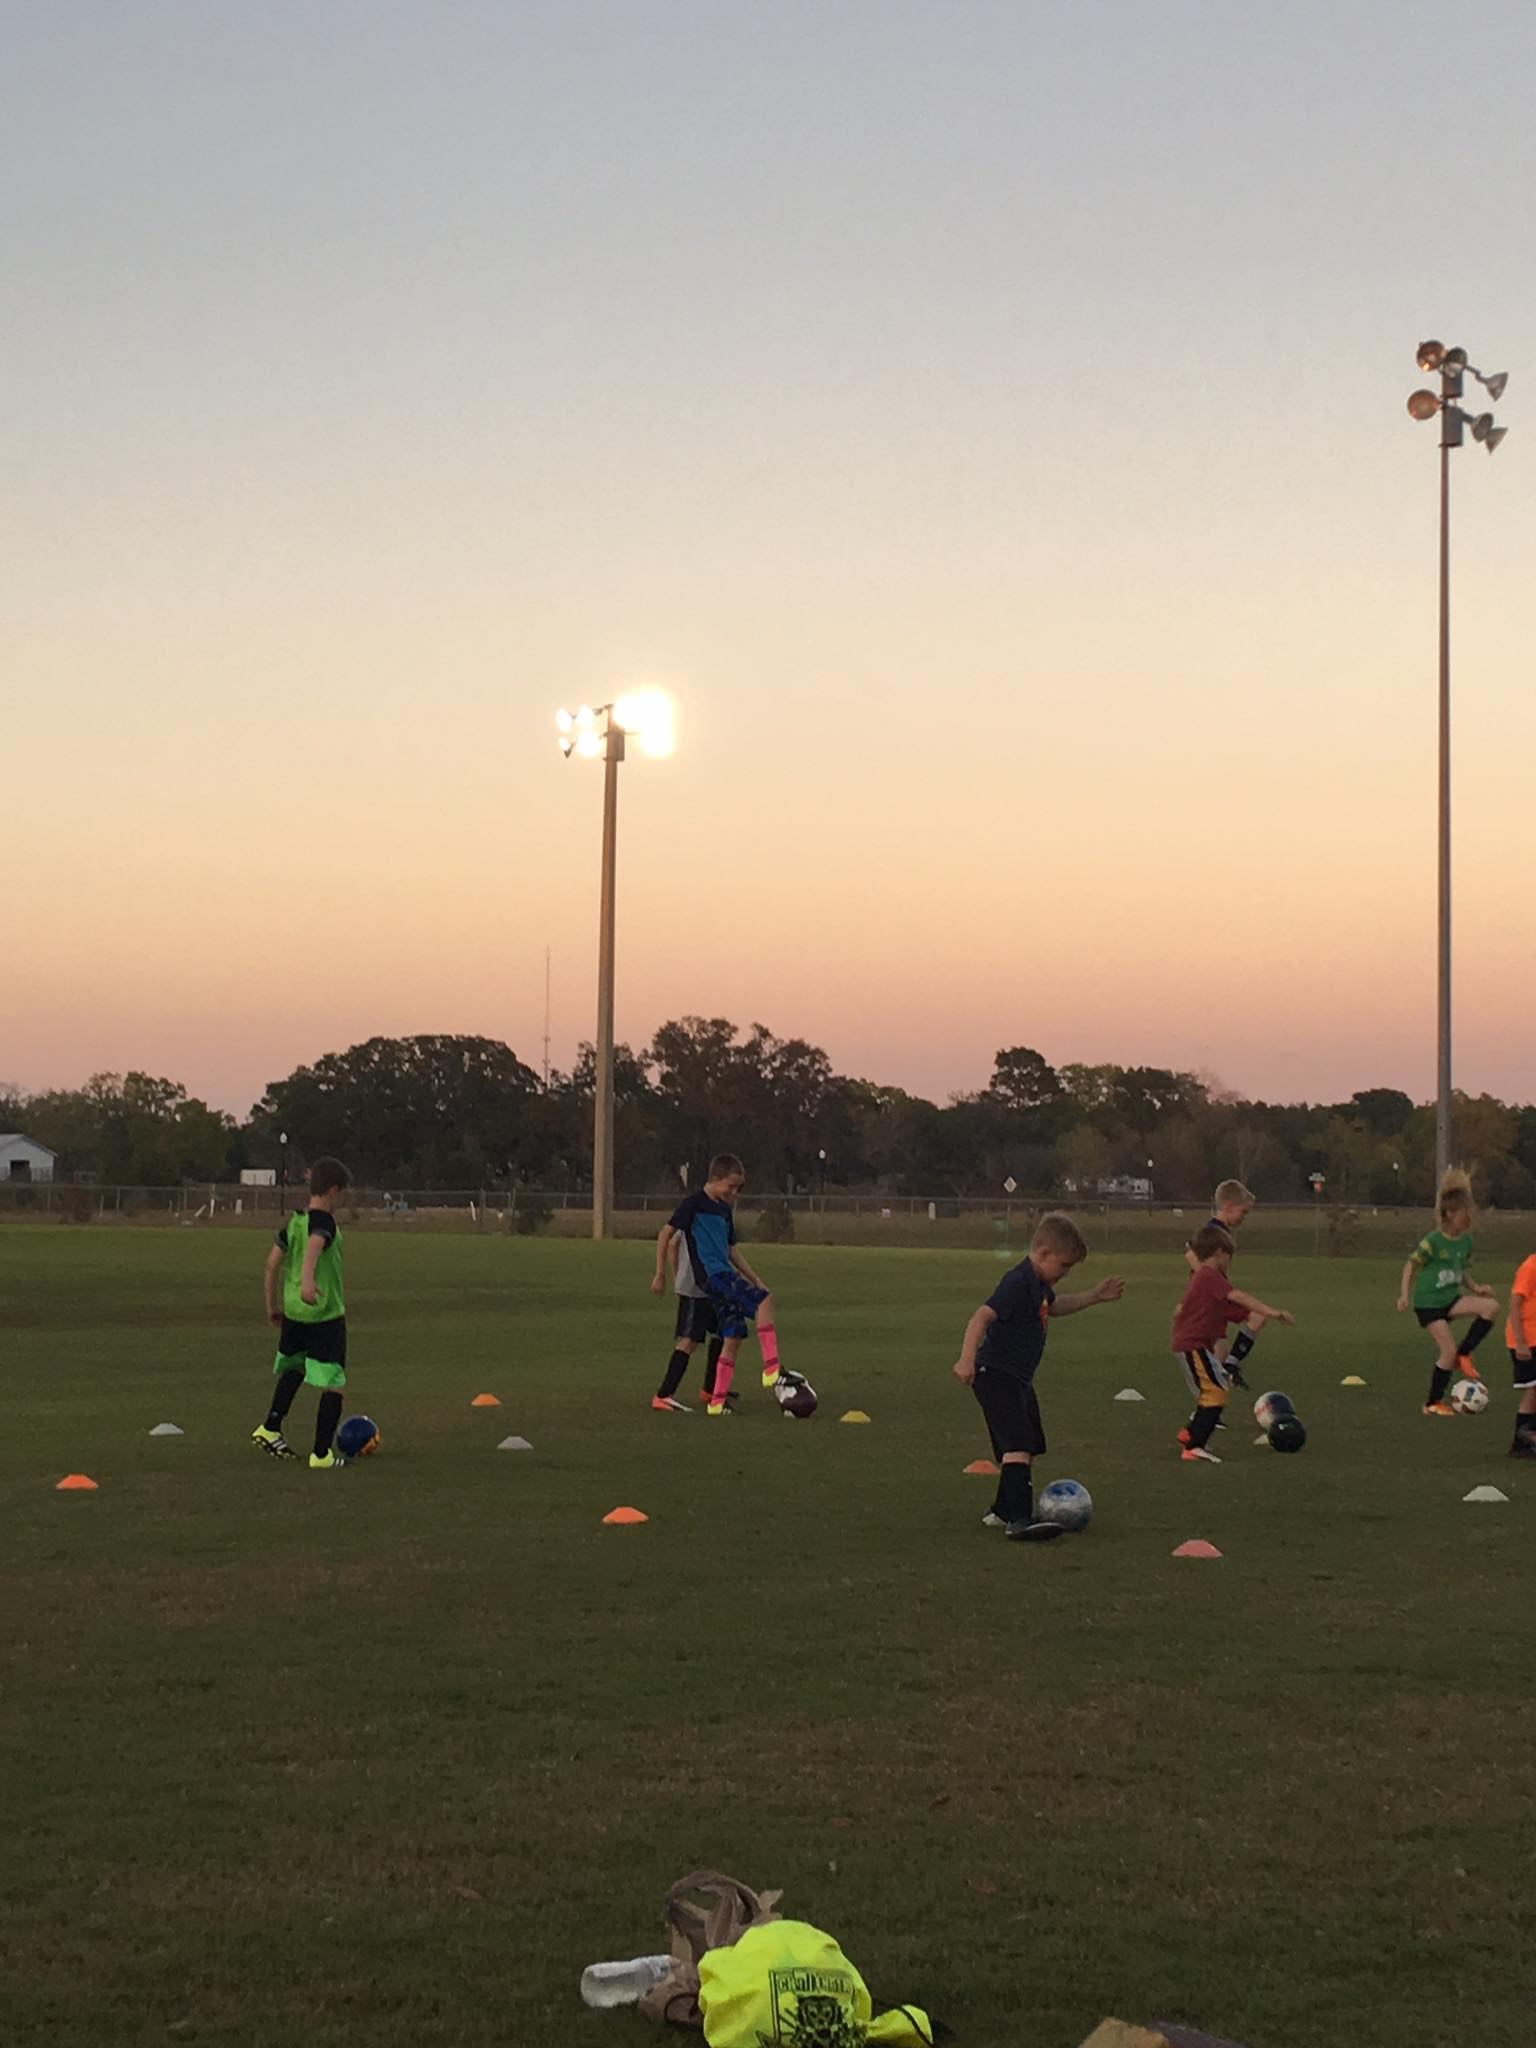 2019 Spring Soccer Begins April 2nd  and runs through April 25th.  2 Training Sessions per week  (Tues & Thur) . . . 6- 7:30 pm   Registration is $60 per child    Ages : 3-17   Register at the Veterans Park Fields (Hicks Road) -  Jan 26, 27 & Feb 4th  OR you can register online here on our  Spring Soccer Registration Page    For more info contact us at   General.FCFC@Gmail.com